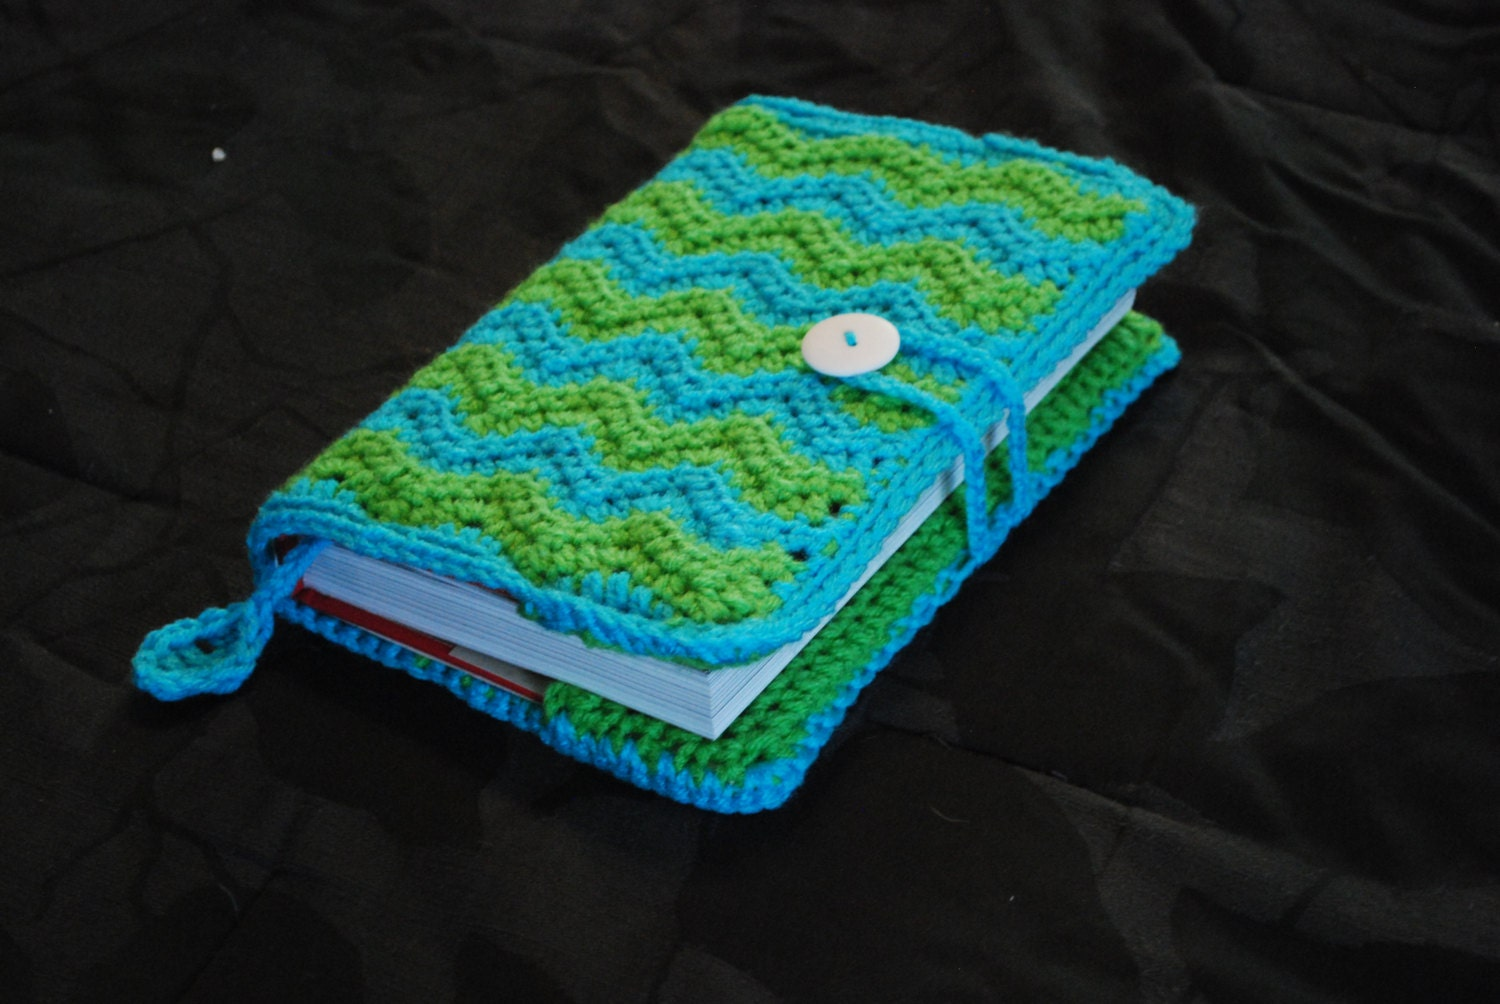 Crochet Book Cover Pattern Free : Crochet book cover chevron pattern with loop and button